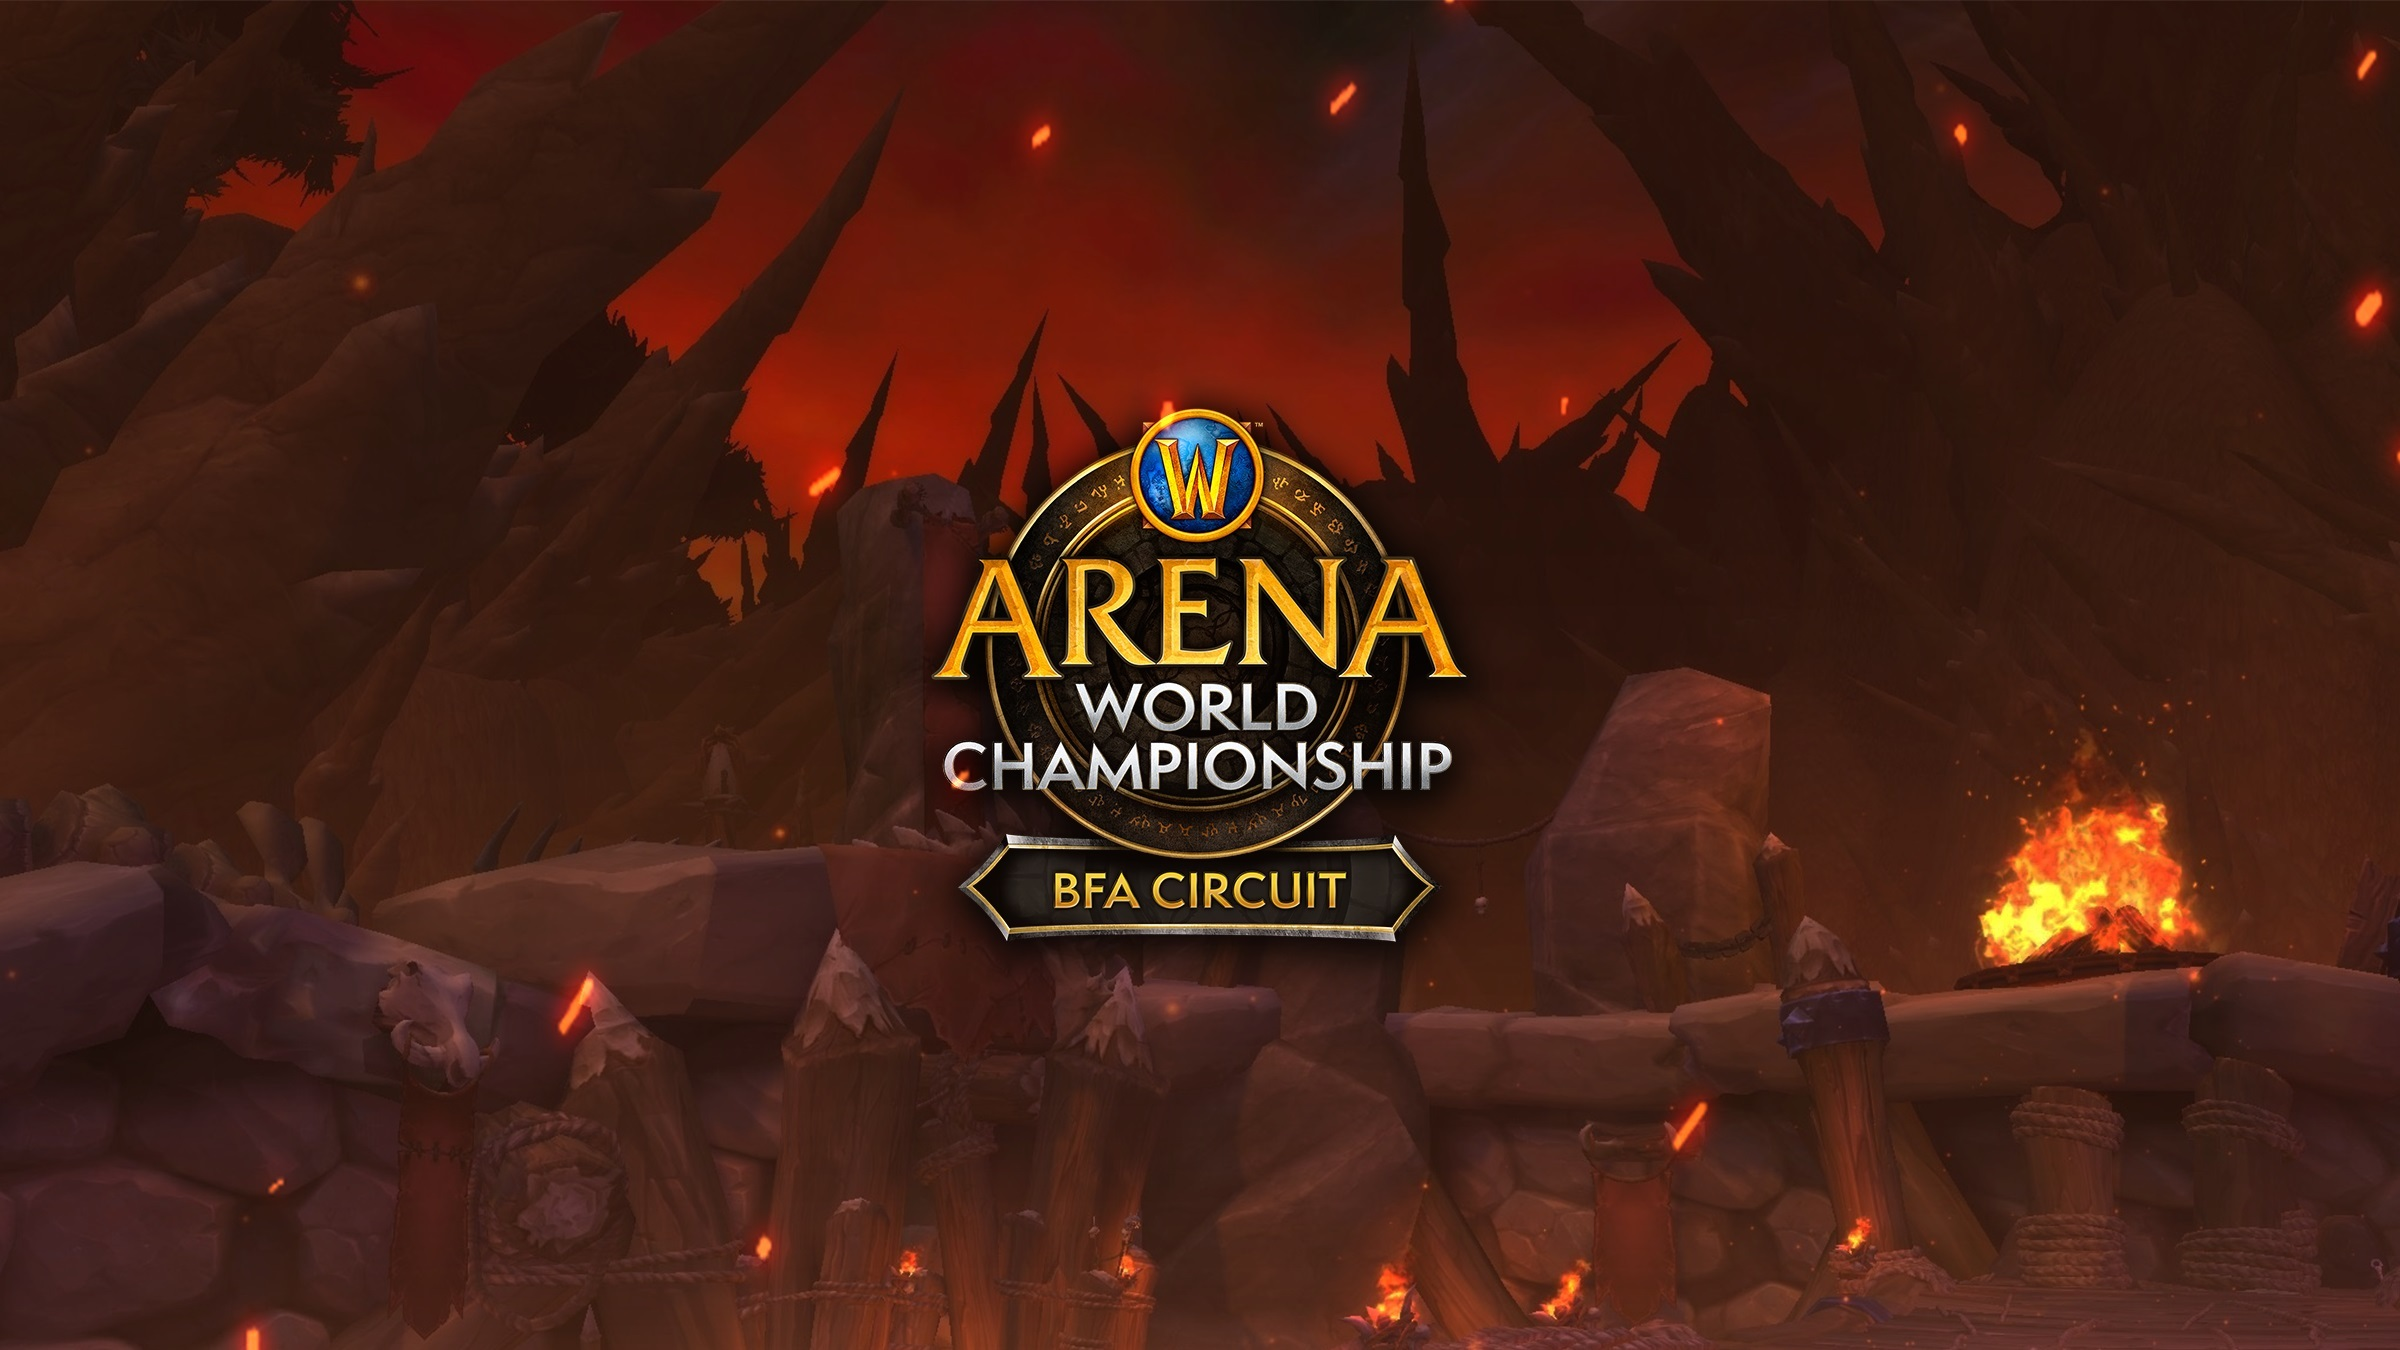 Arena World Championship Circuit Viewer's Guide